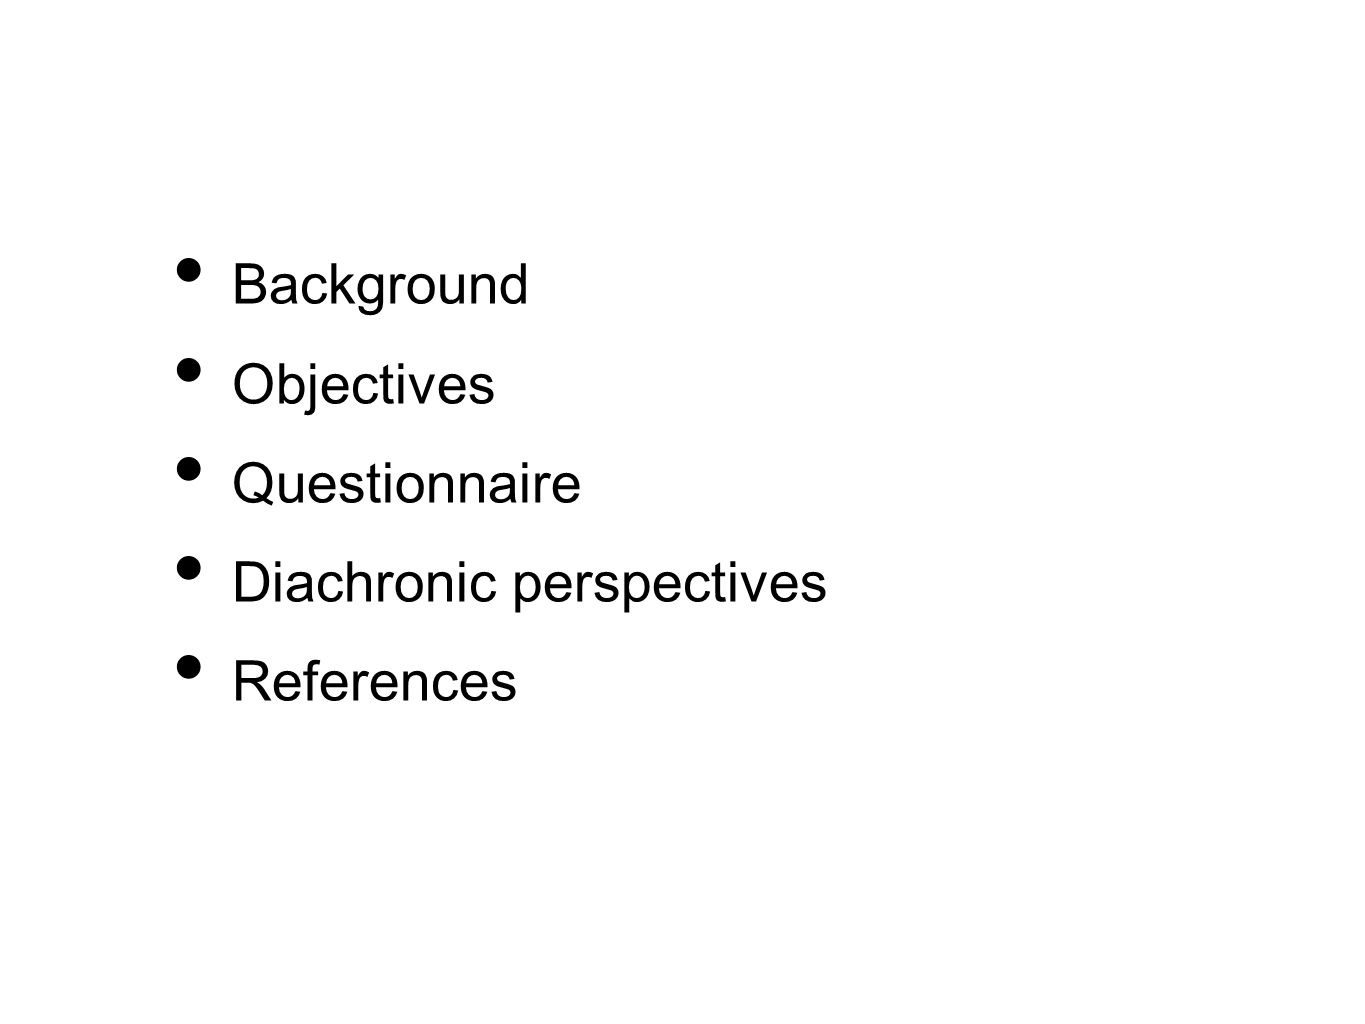 Background Objectives Questionnaire Diachronic perspectives References